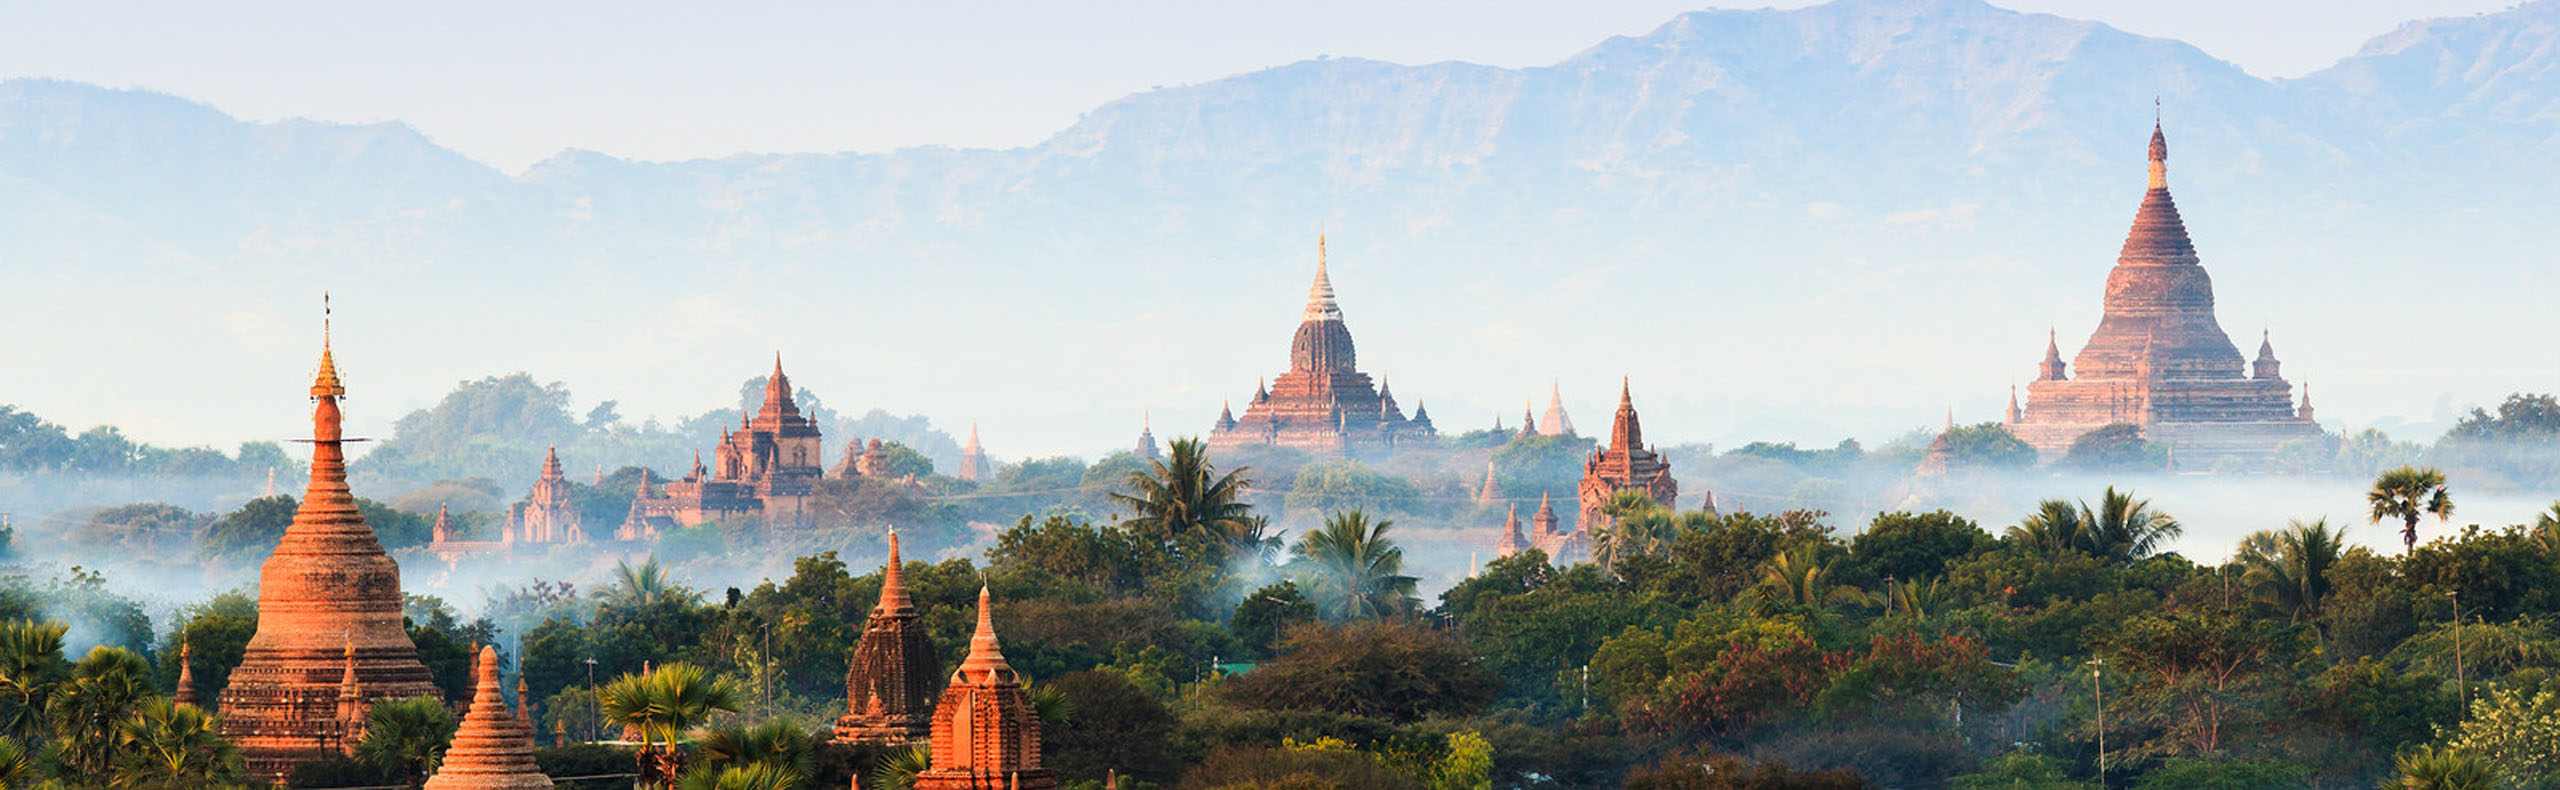 February Weather in Bagan - Dry with Little Rainfall